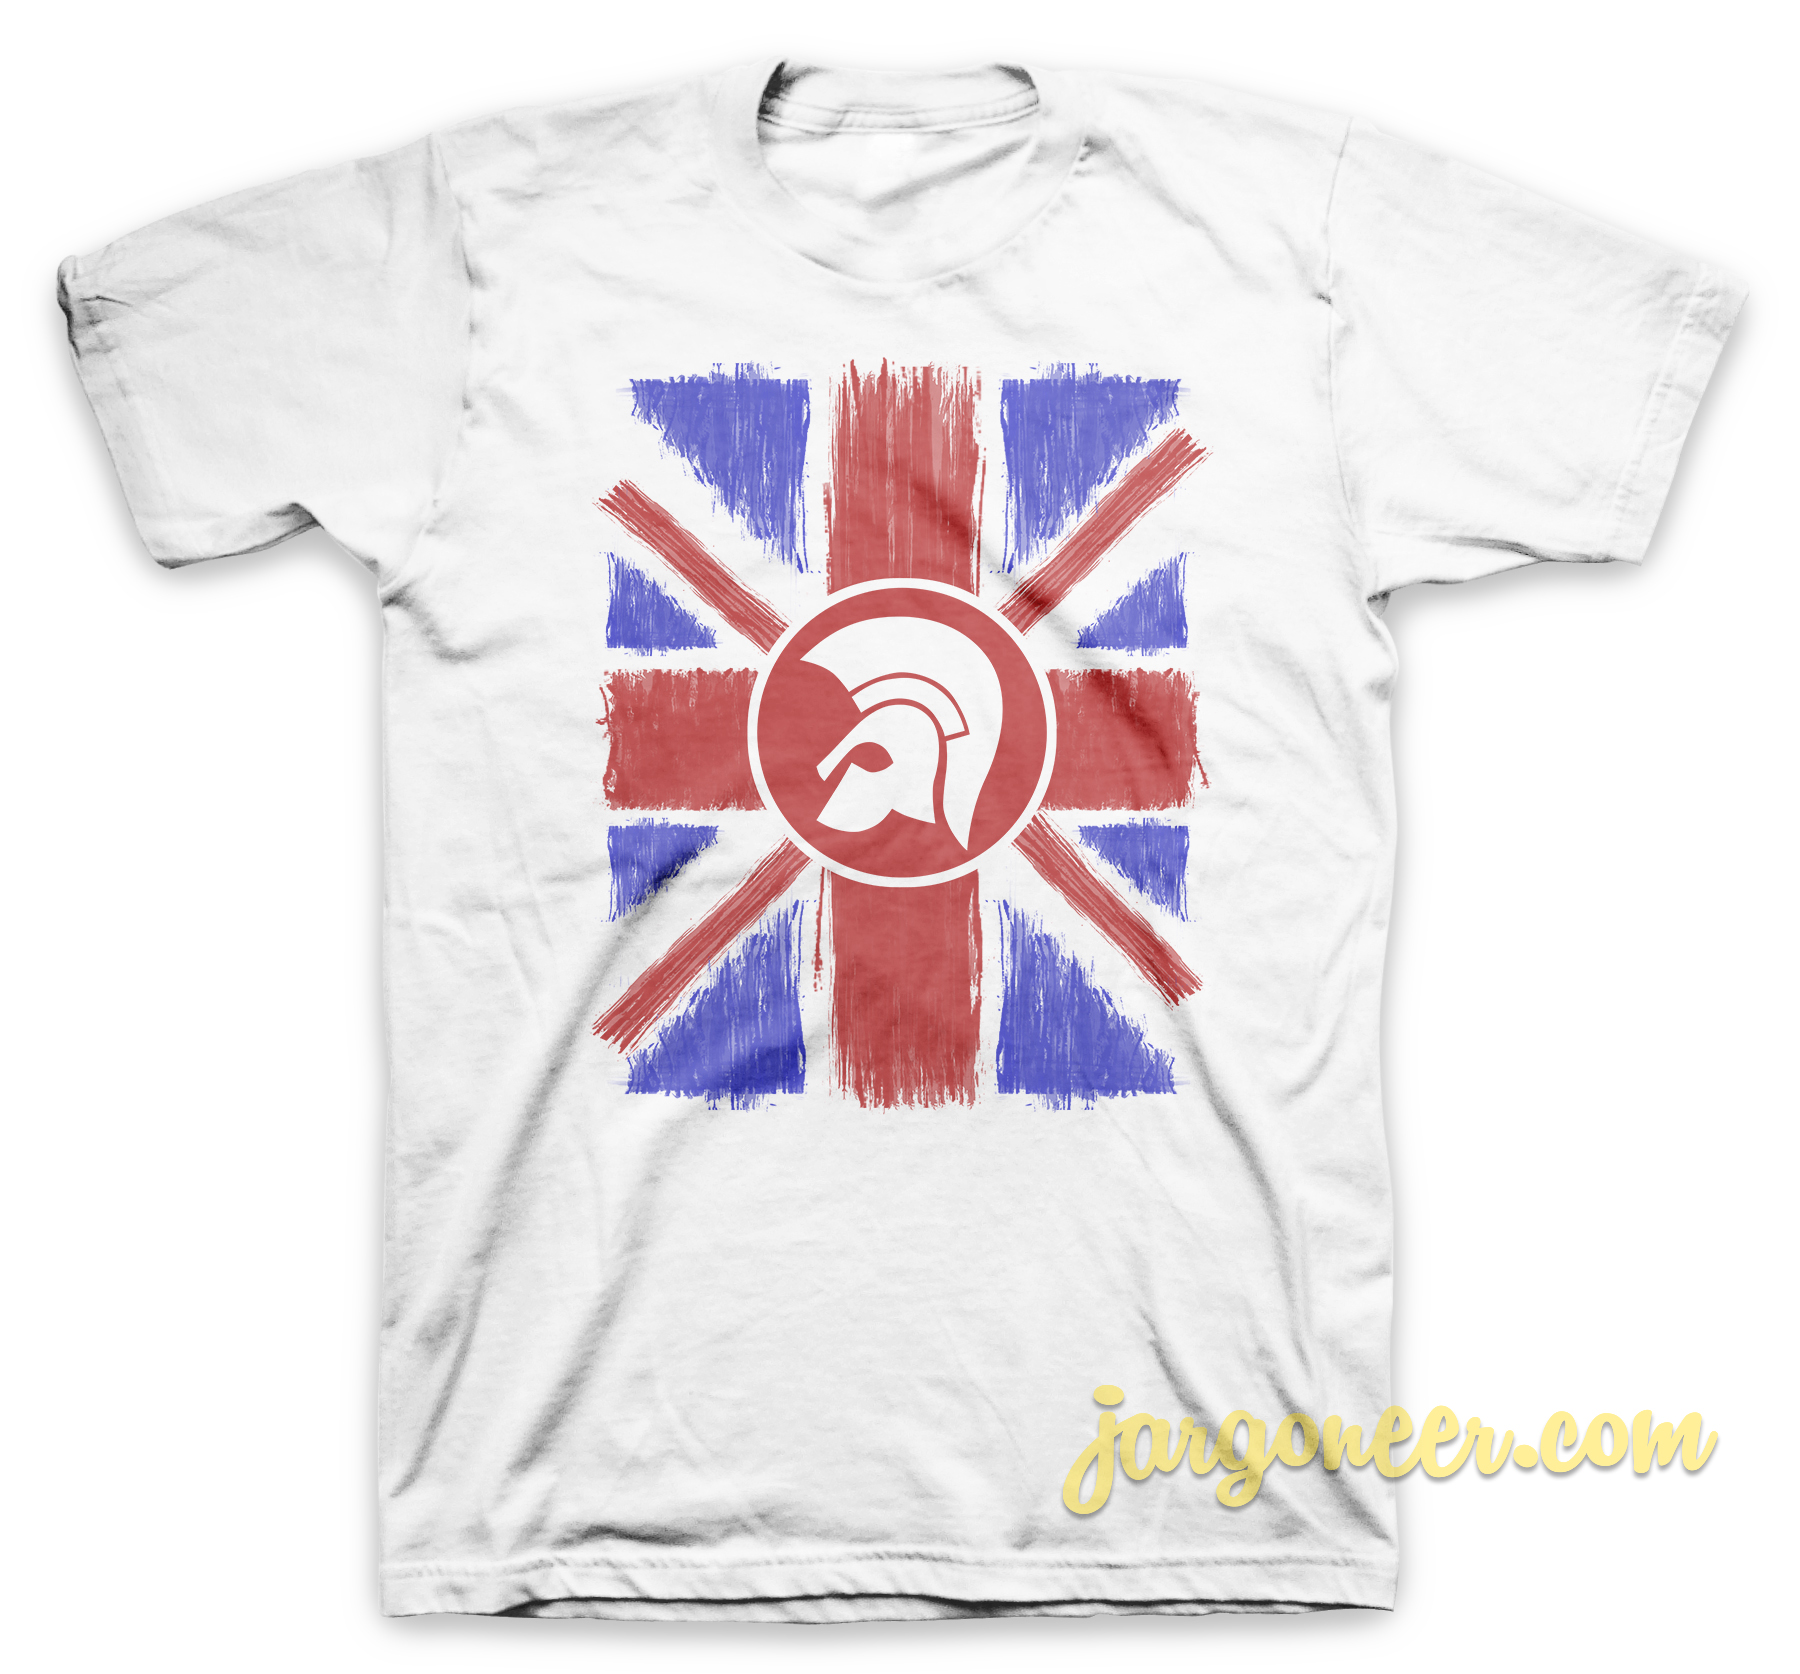 Union Jack Scratch T-Shirt